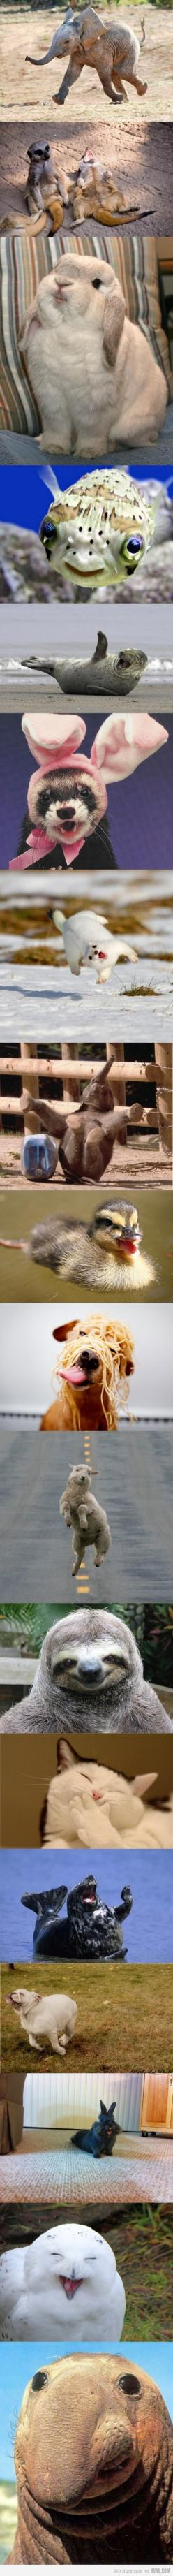 I am a sucker for cute animal pictures = ]: Funny Animals, Happy Animals, So Happy, Funnies, Smile, Happiest Animals